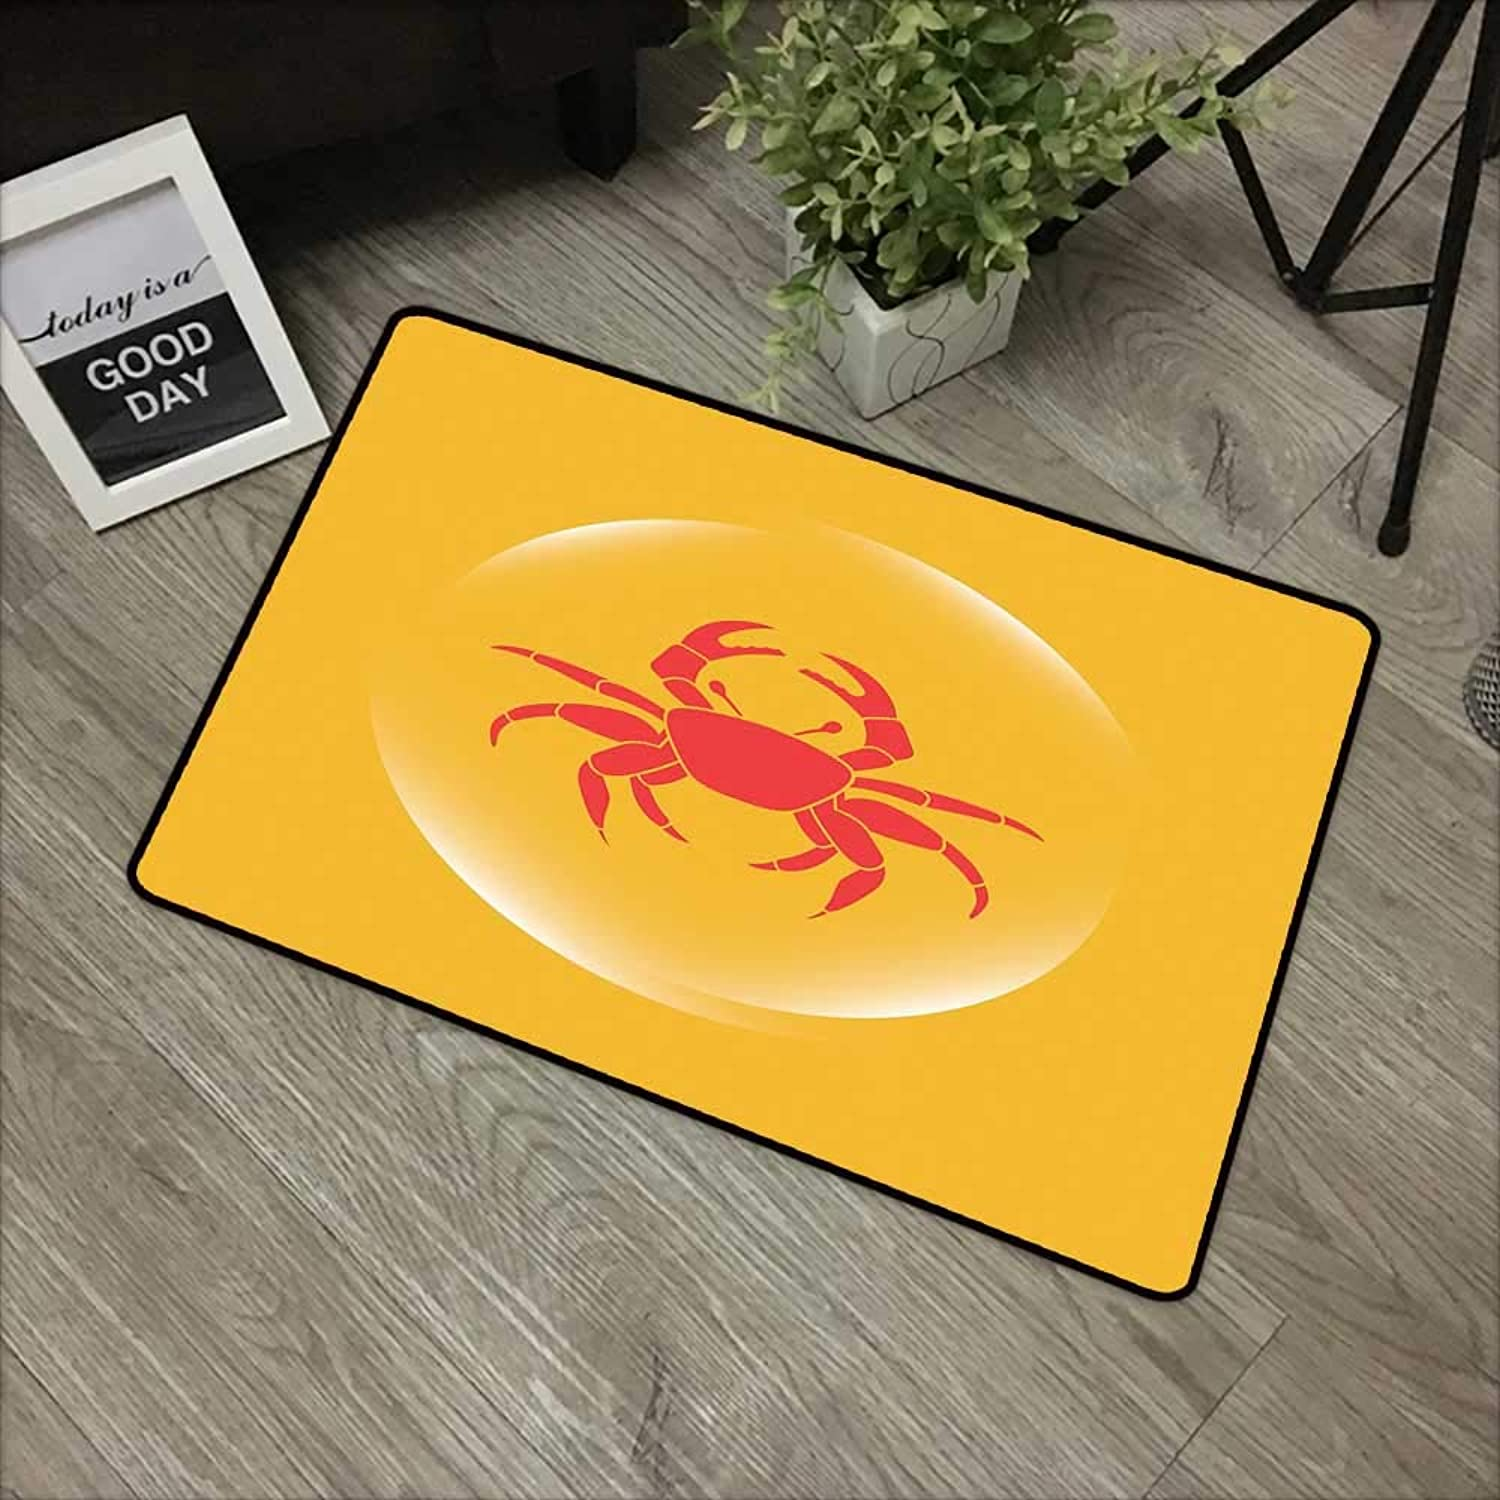 Door mat W35 x L59 INCH Crabs,Crab Icon in an Abstract Bubble on Yellow Background Seafood Theme,Marigold Dark Coral White Non-Slip, with Non-Slip Backing,Non-Slip Door Mat Carpet